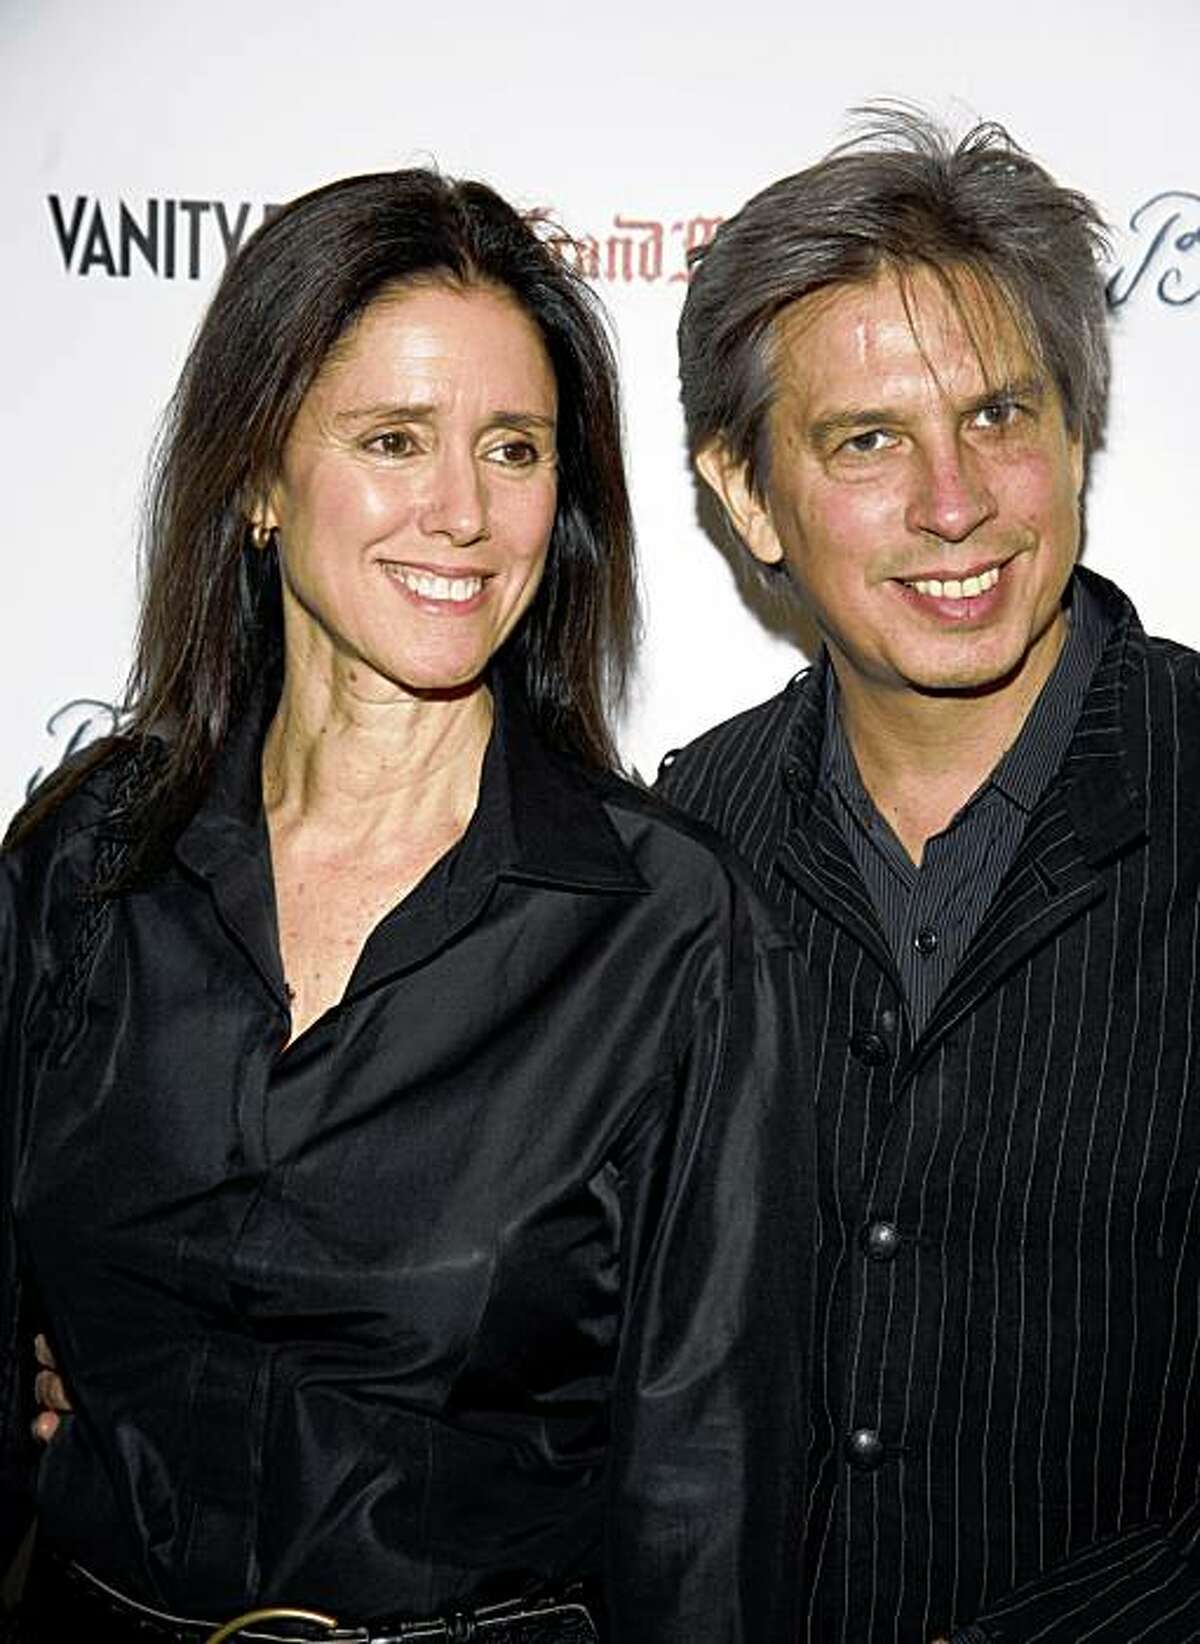 Director Julie Taymor and her husband, composer Elliot Goldenthal, arrive at the premiere of the film 'Bright Star' in New York, Monday, Sept. 14, 2009. (AP Photo/Andy Kropa)